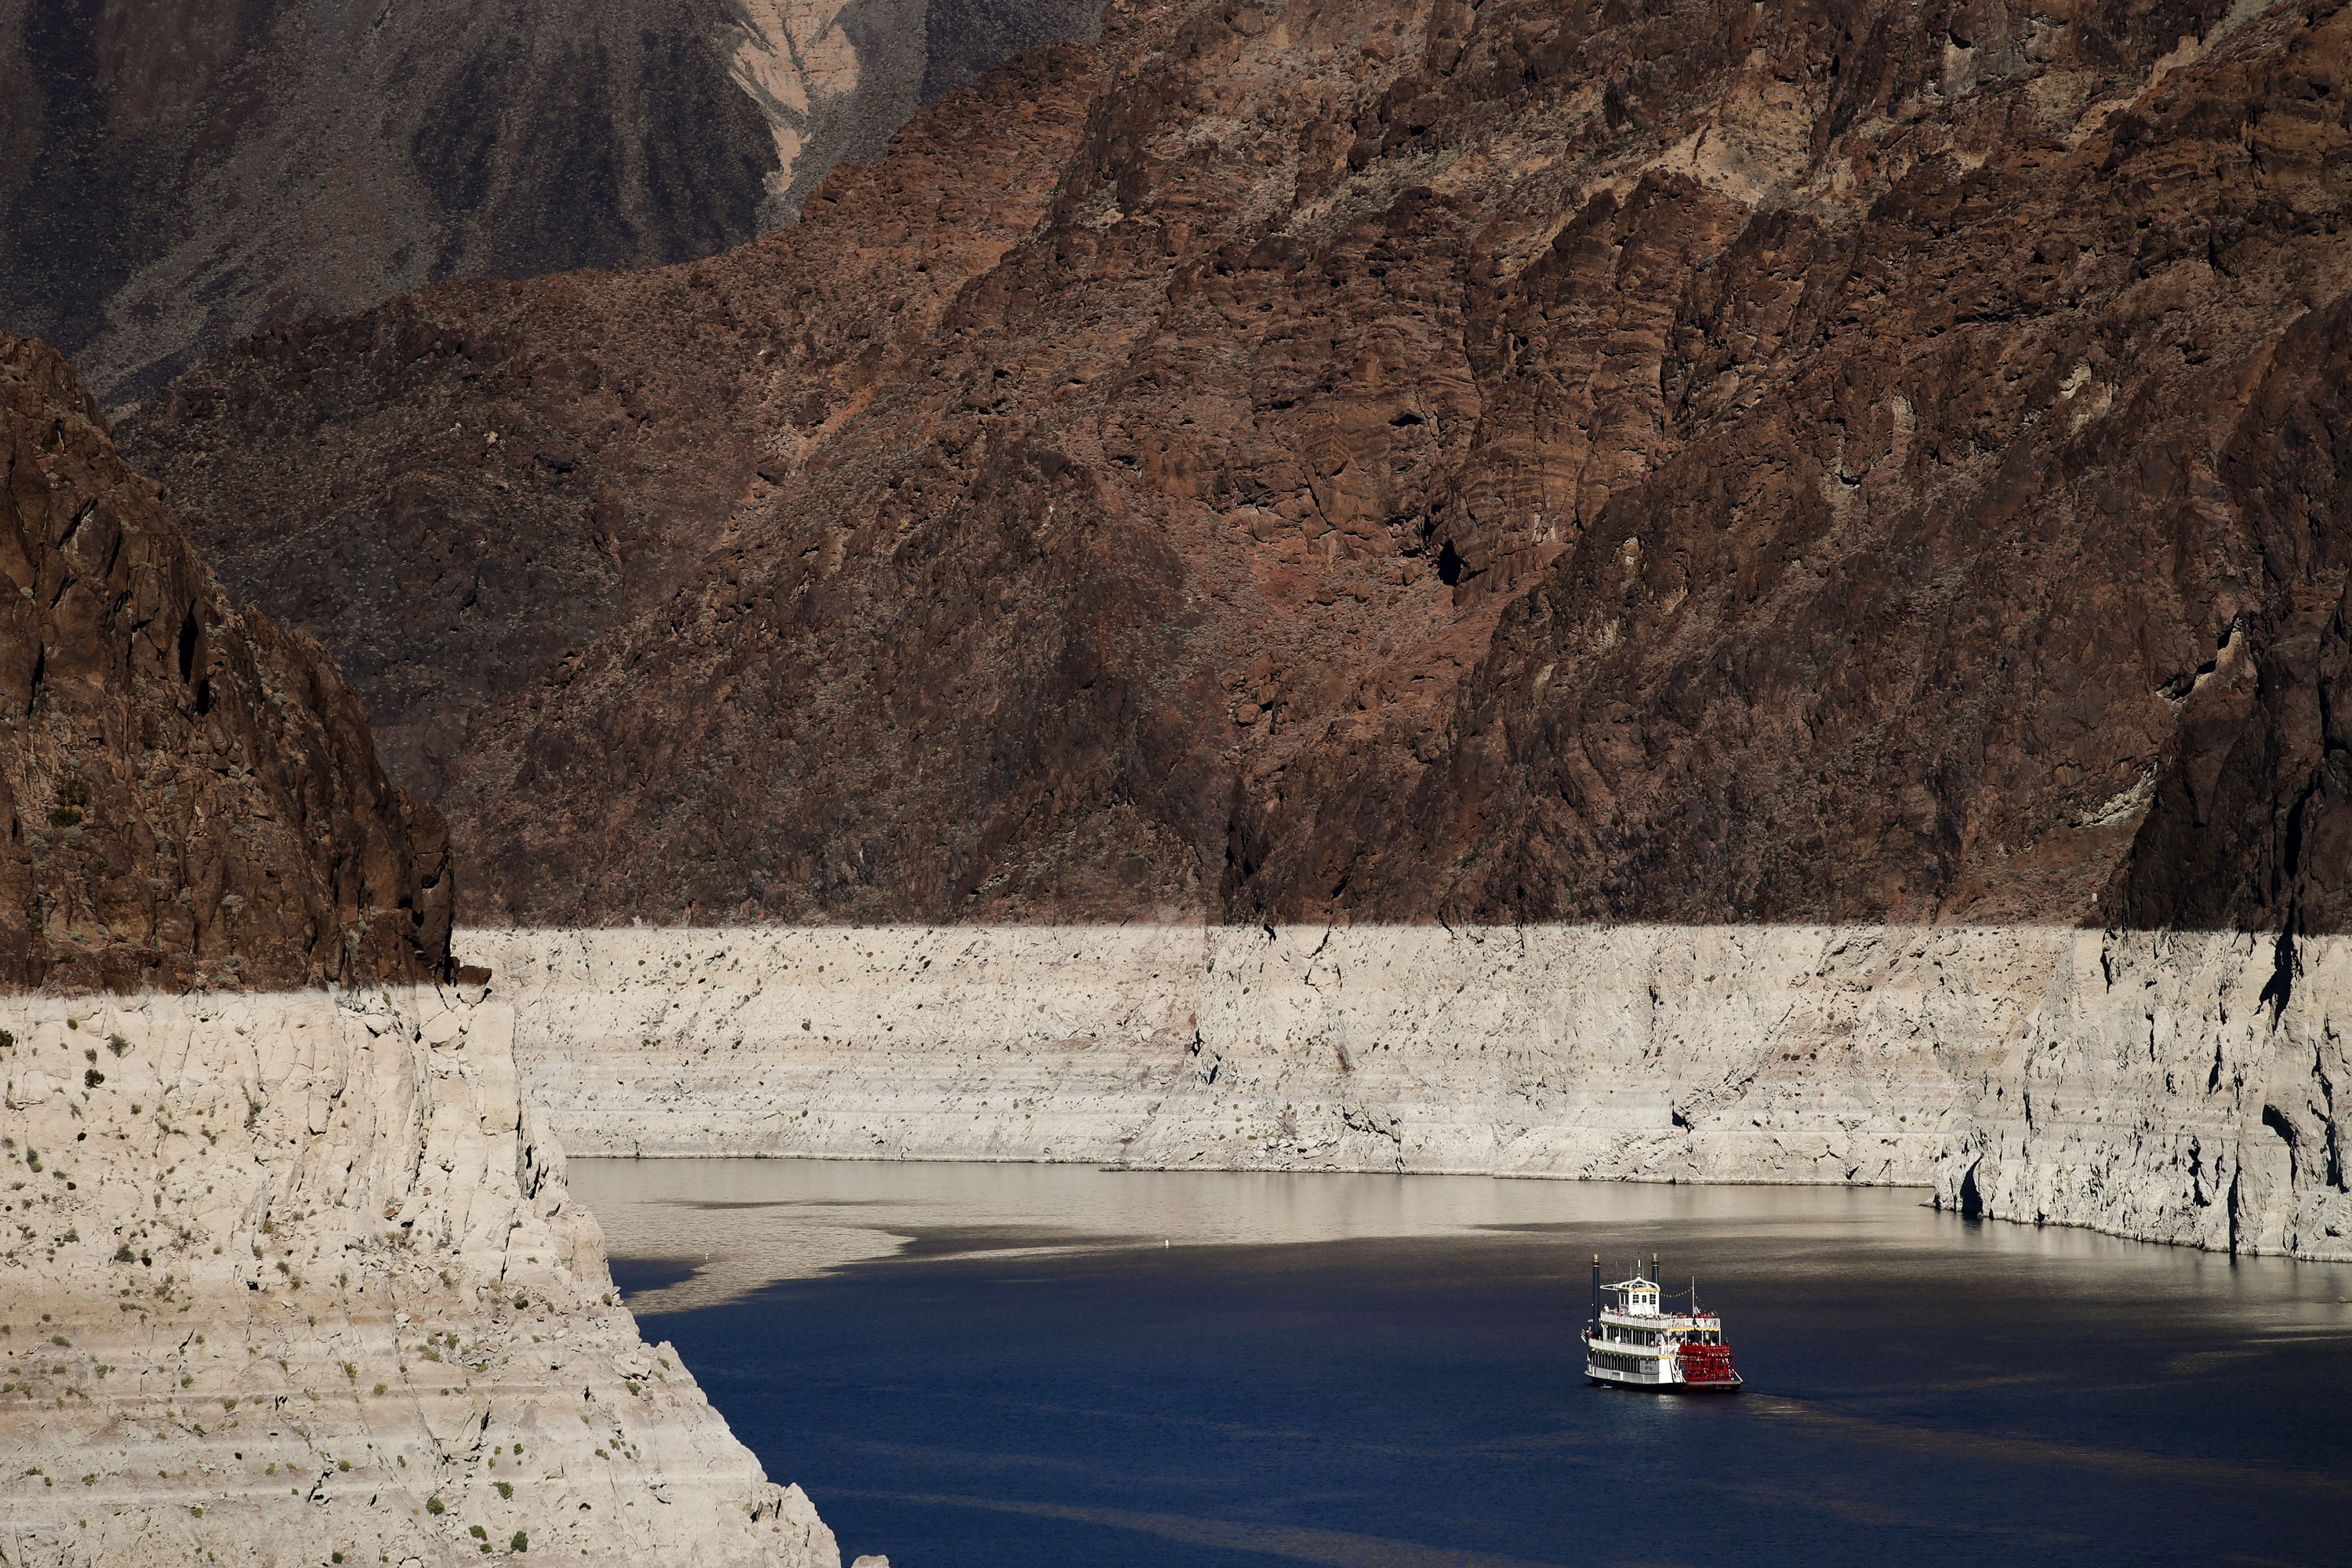 Photo: Lake Mead Water Level, Drought | AP Photo